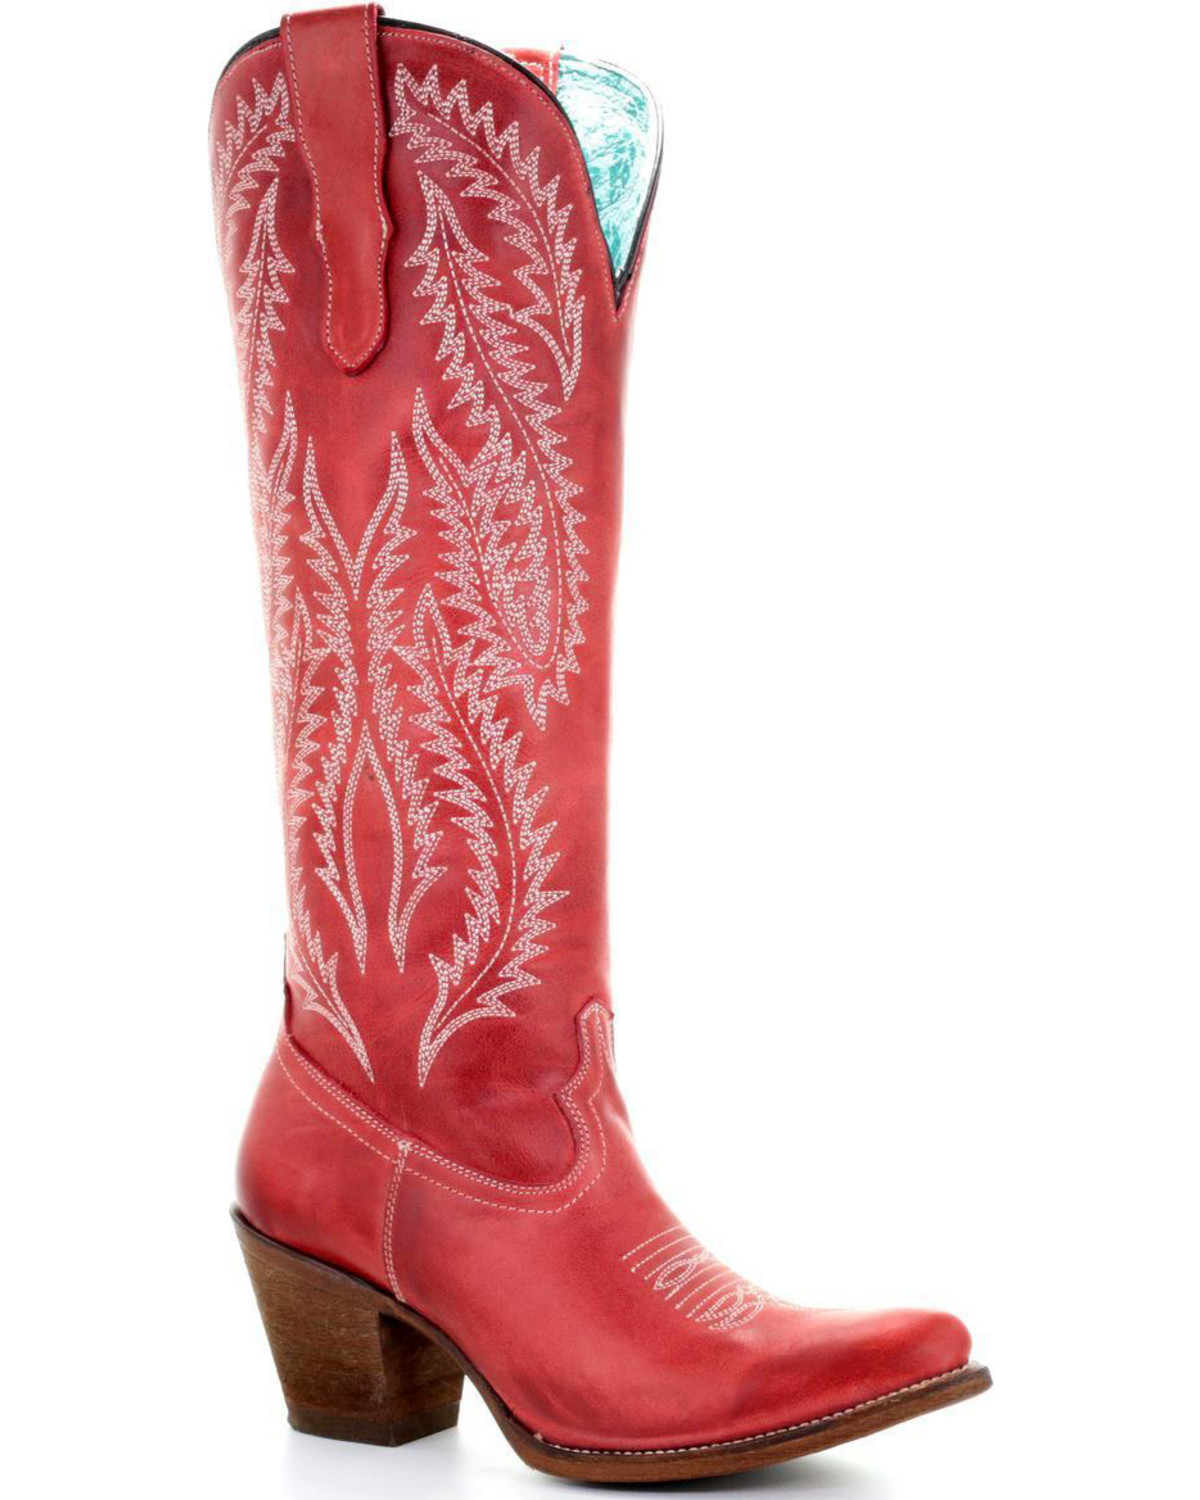 62340f35db7 Corral Women s Red Embroidery Tall Top Western Boots - Round Toe ...